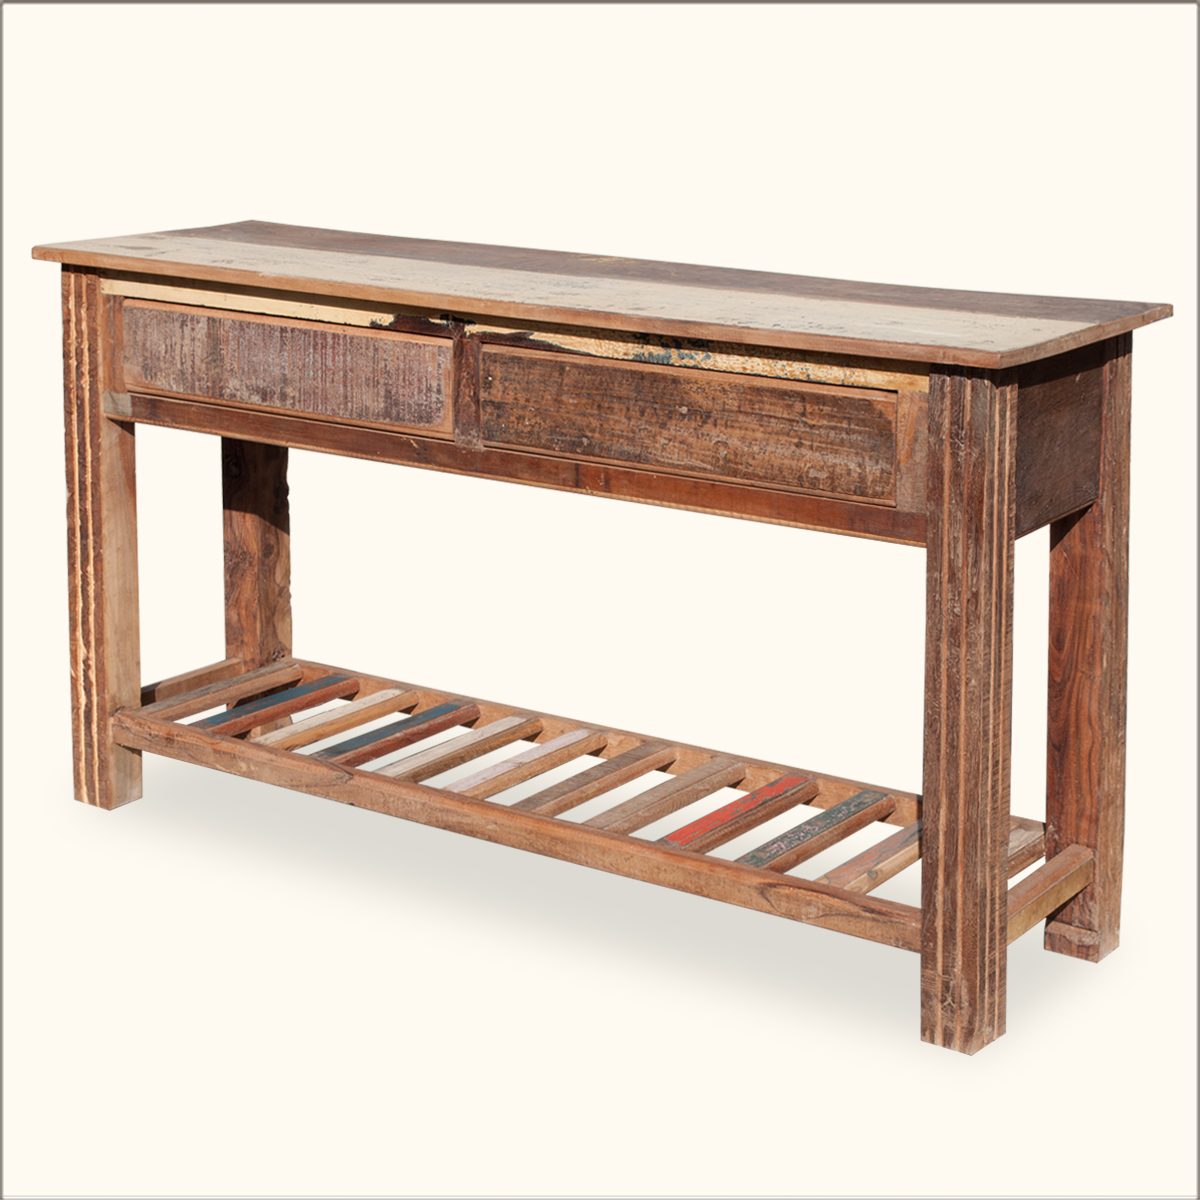 Rustic reclaimed wood tier storage drawer console foyer